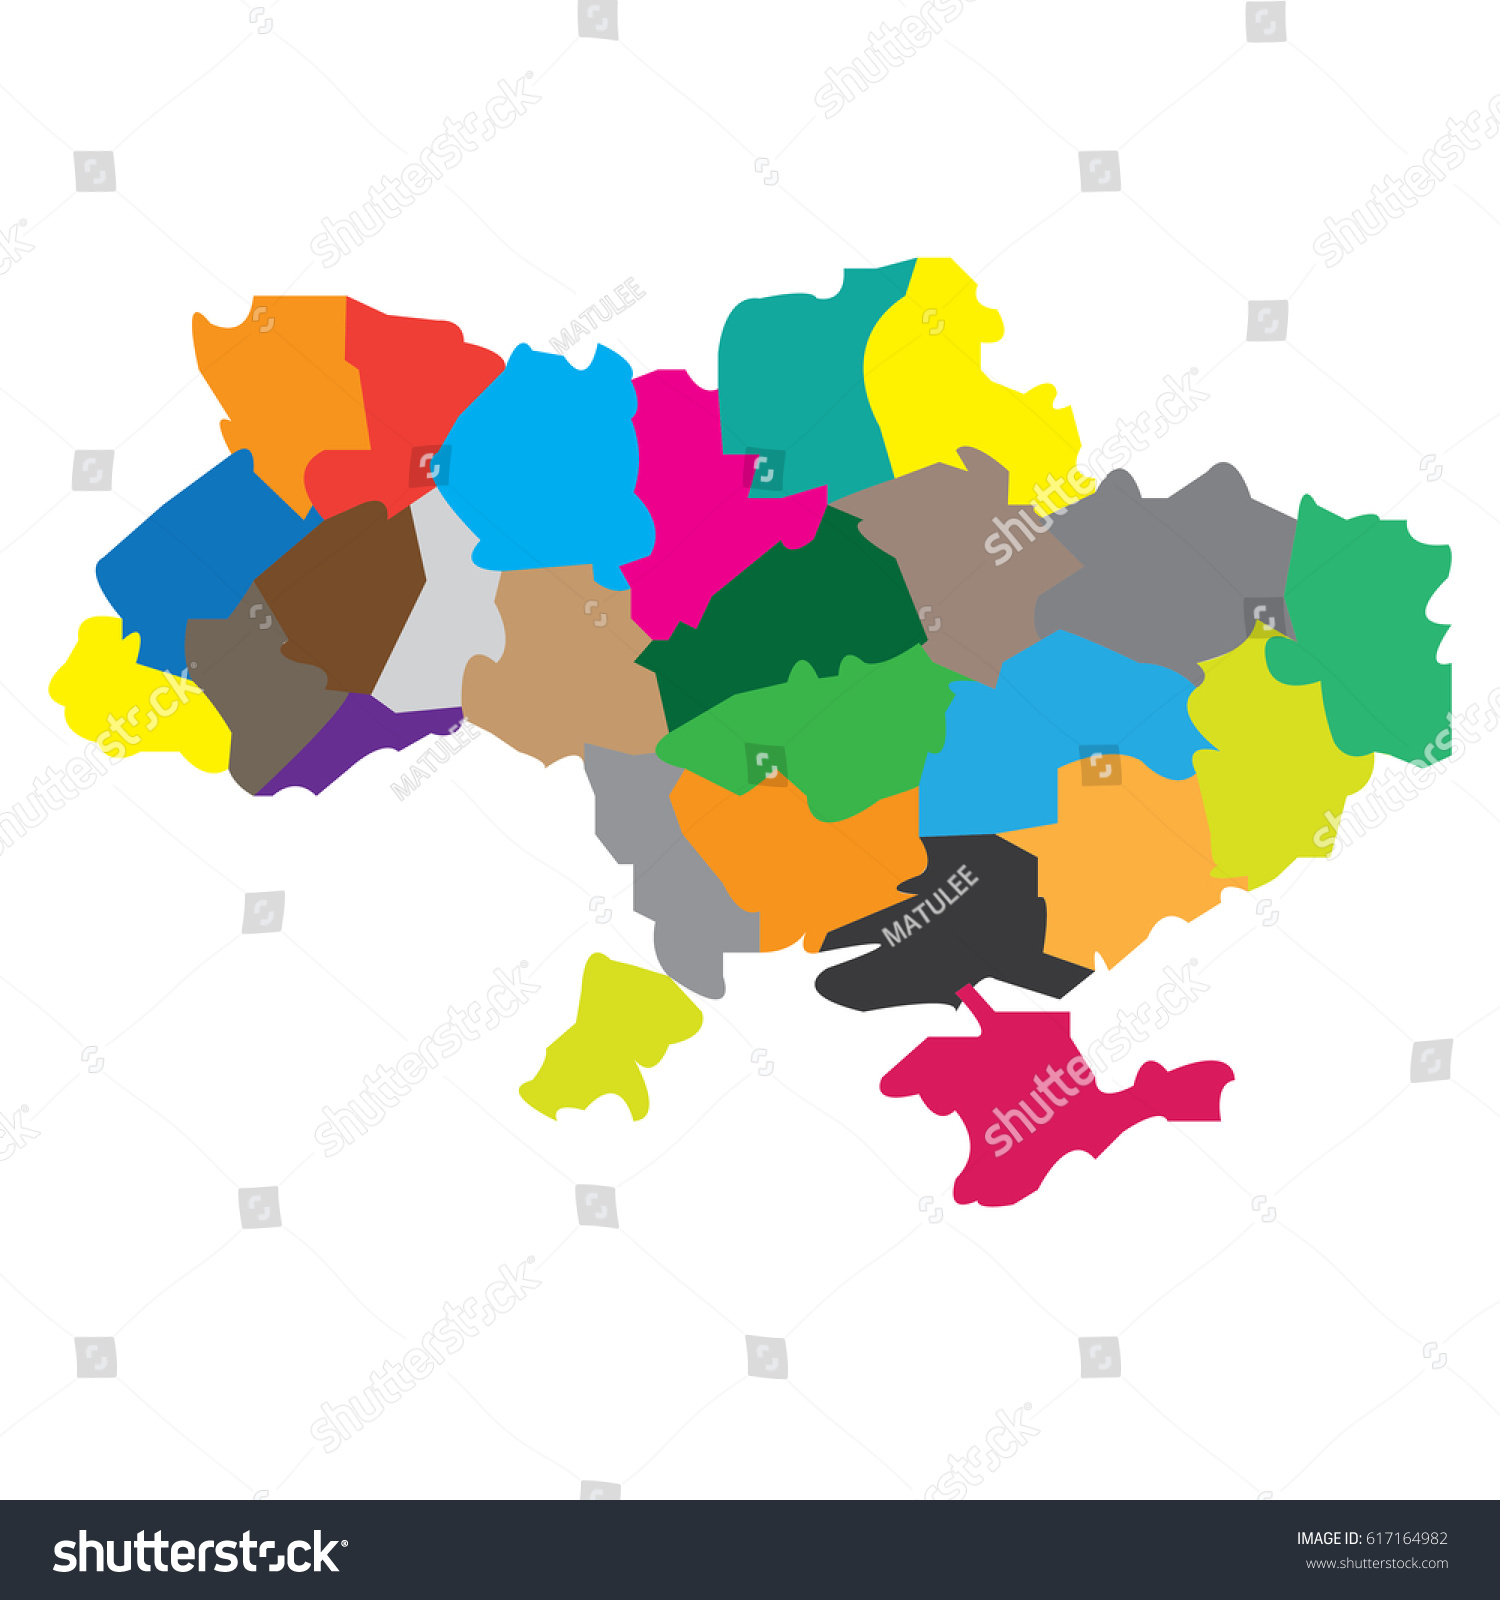 Map countries ukraine stock vector 617164982 shutterstock map countries ukraine gumiabroncs Images